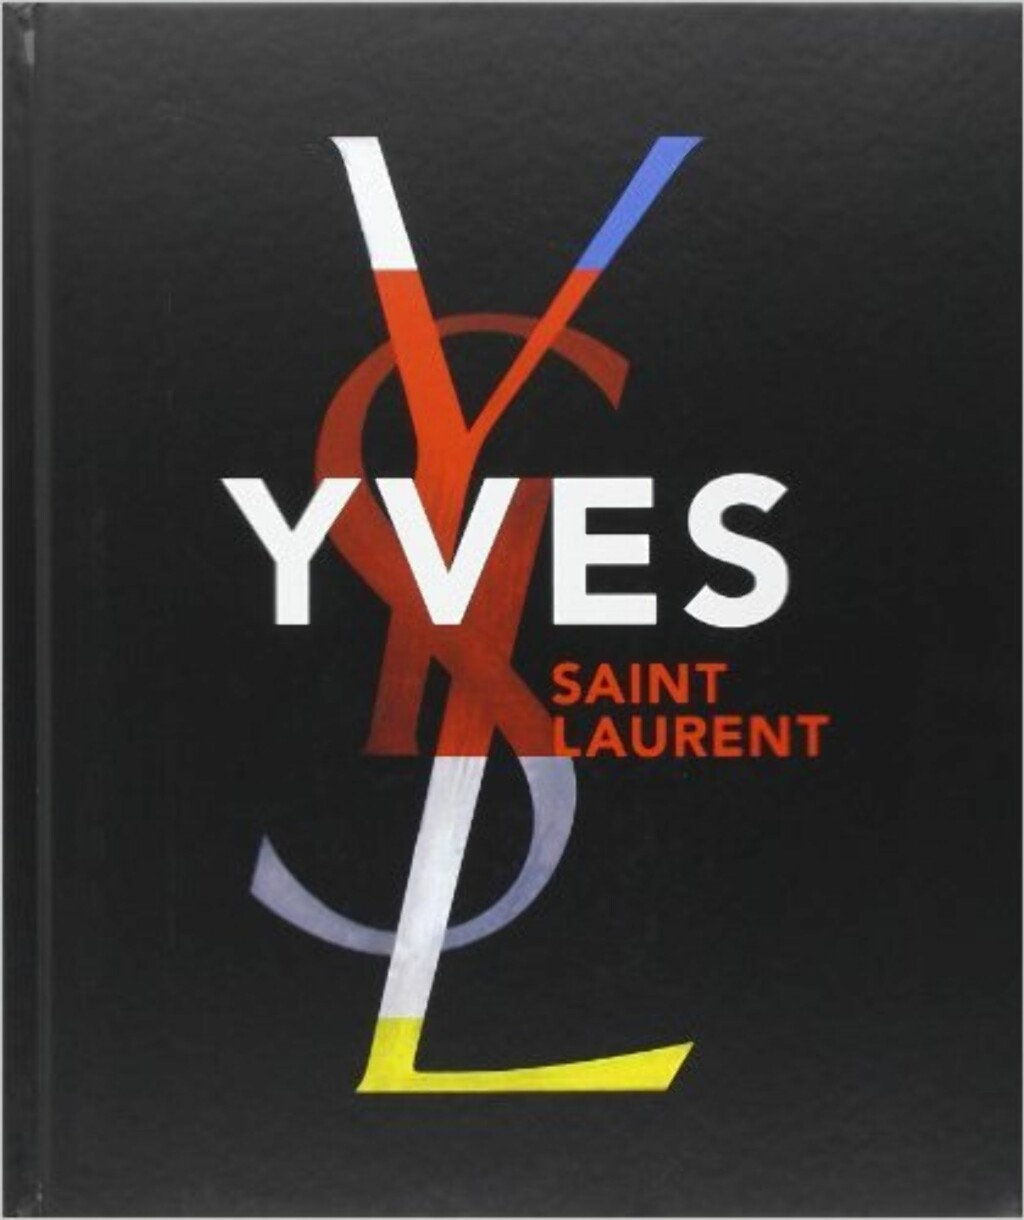 Yves Saint Laurent via Amazon.com, kr 412.